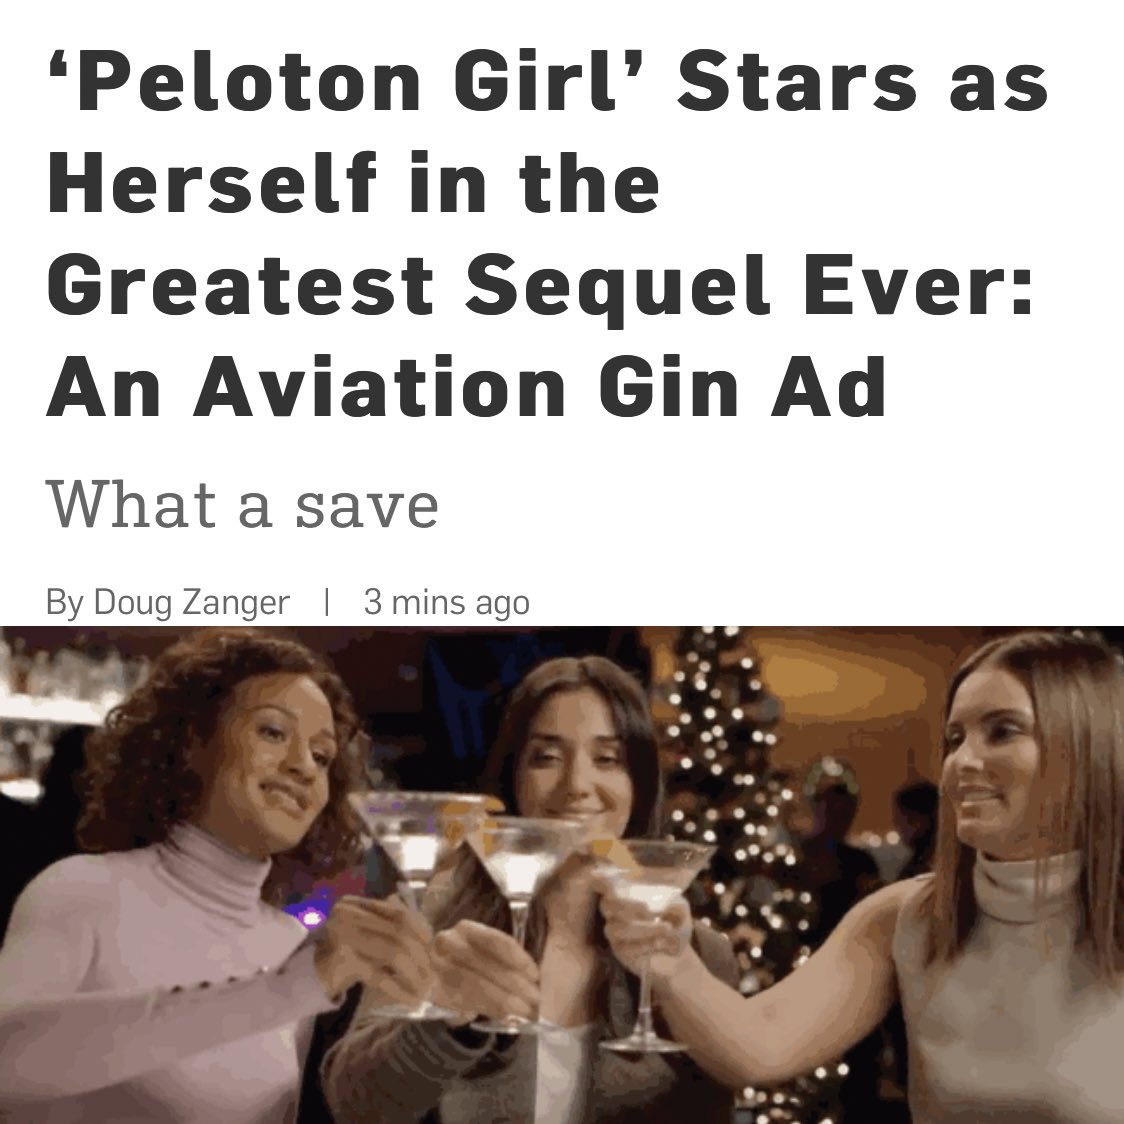 No one's more innovative than @AviationGin right now. Brand deserved all the praise in the world. Next level stuff.